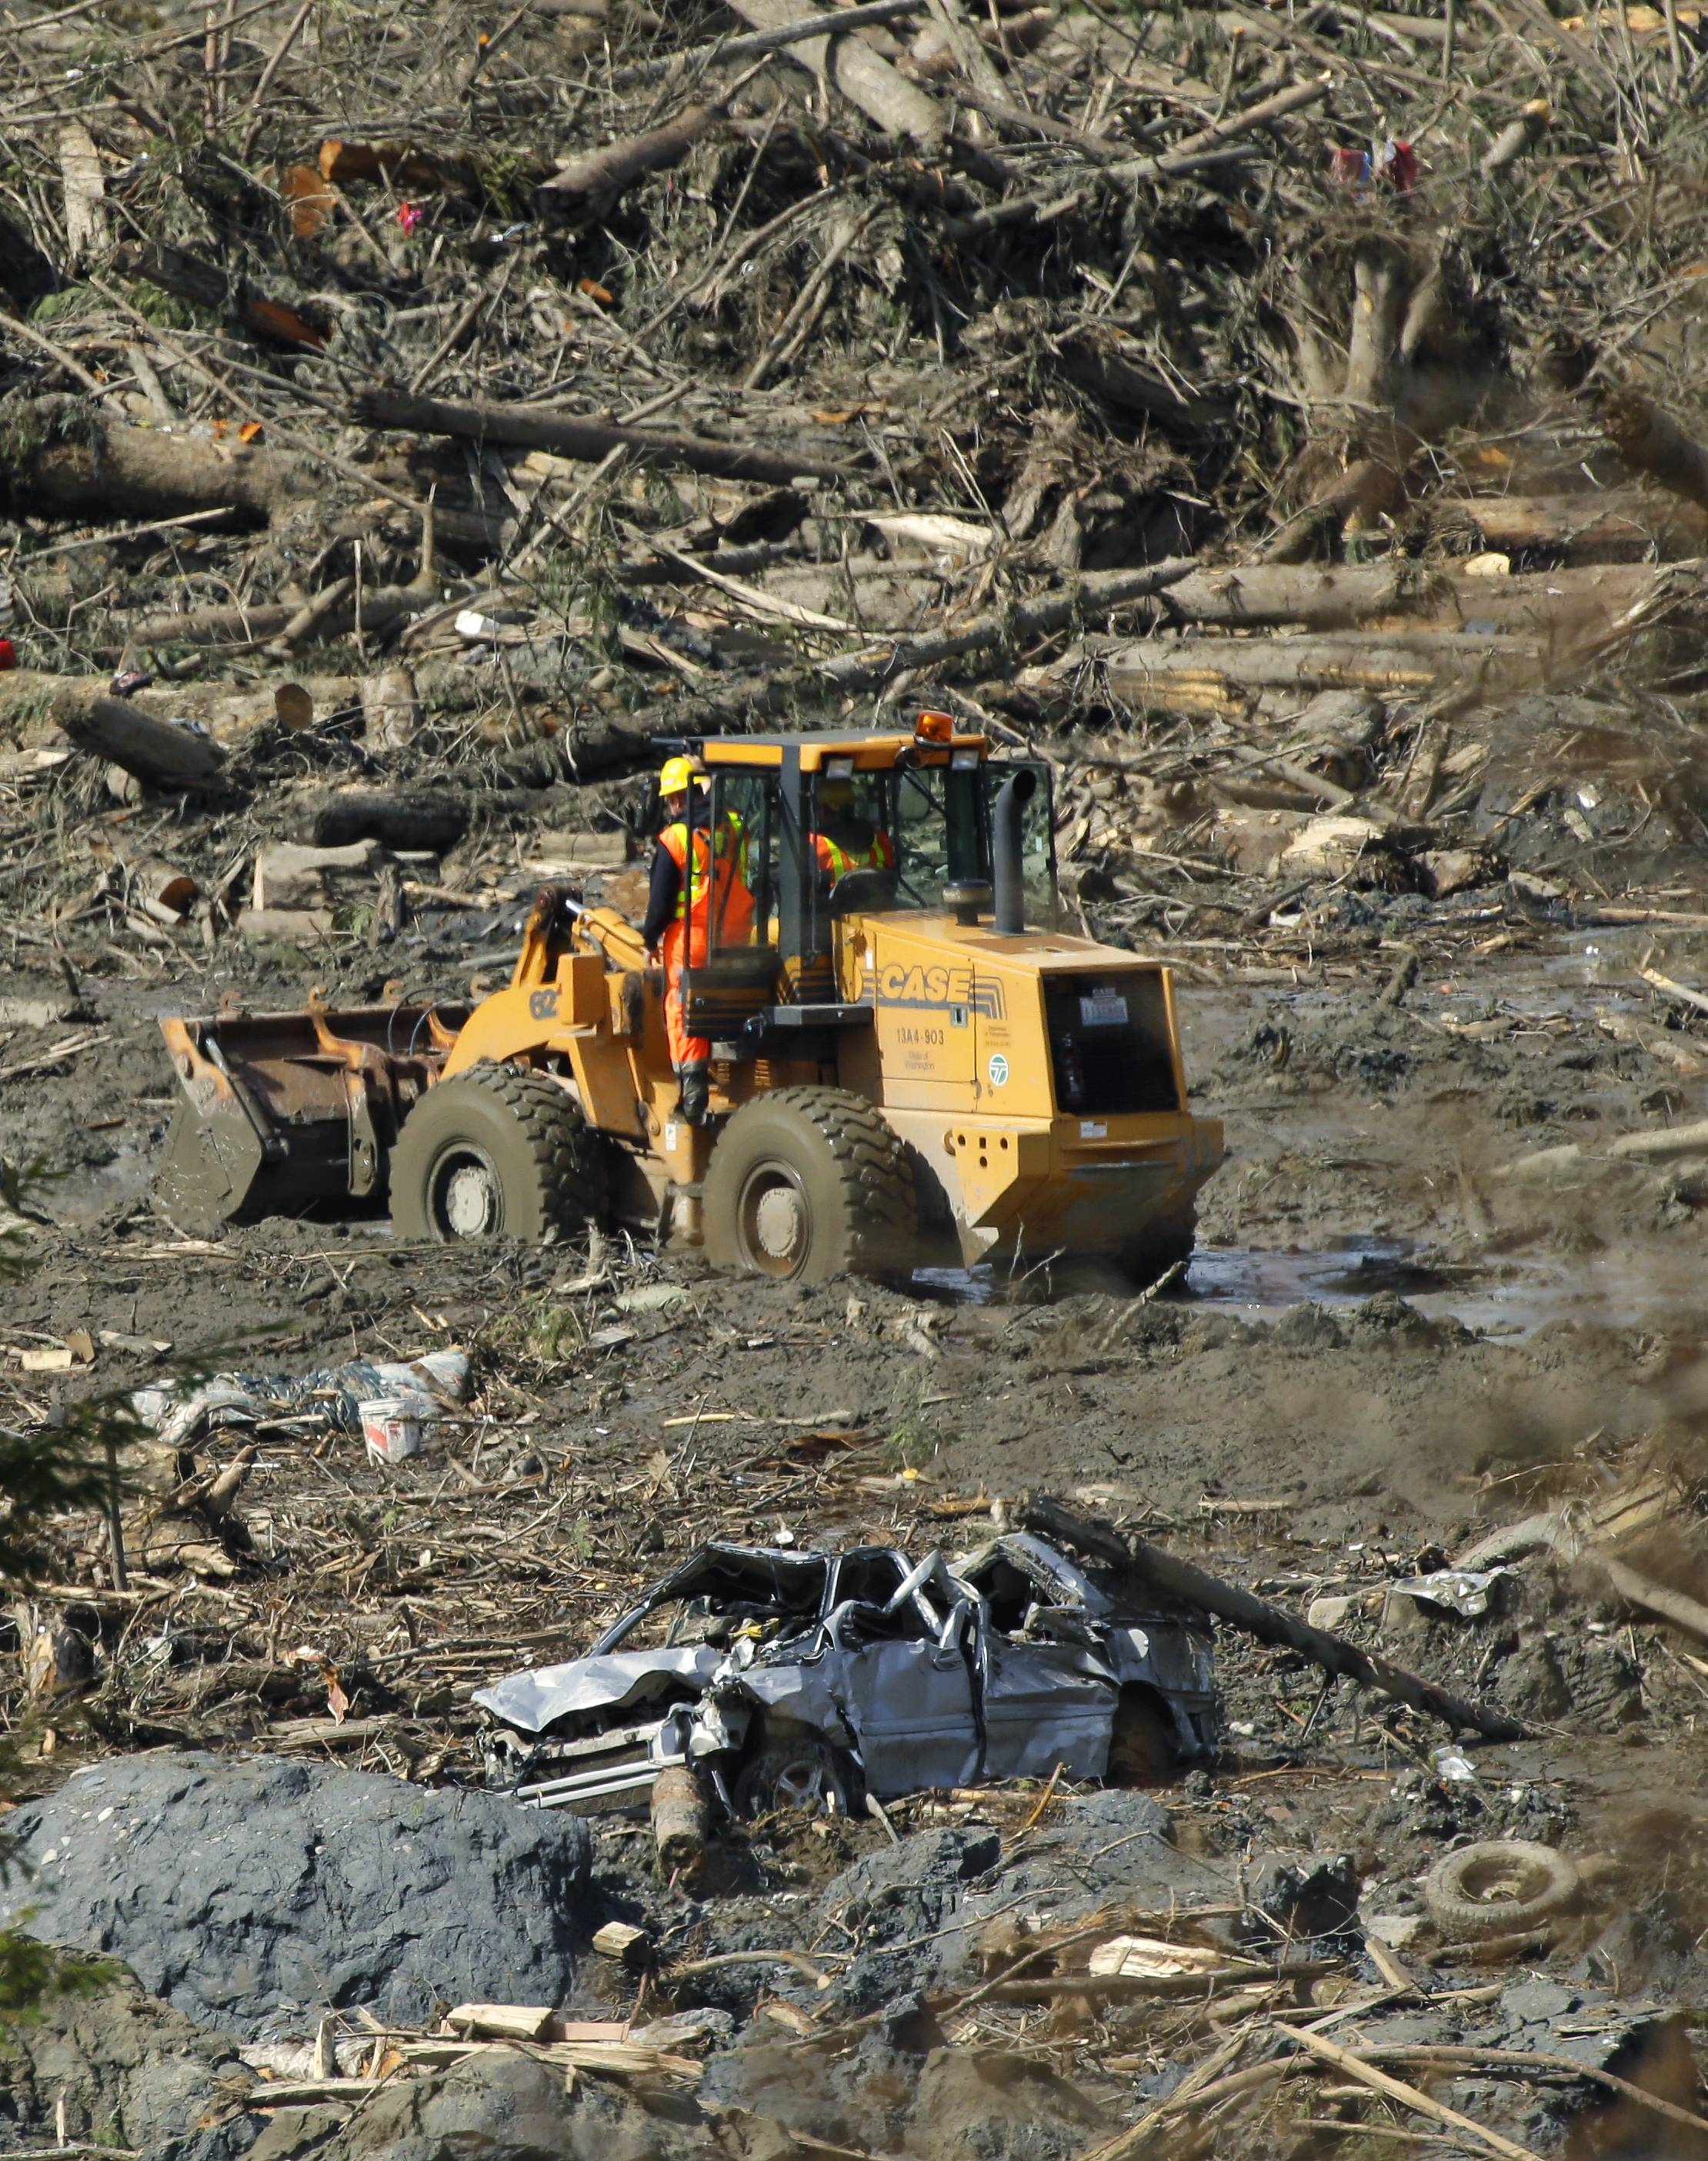 ASSOCIATED PRESSA front-end loader is driven past a wrecked car Monday near Darrington, Wash., in the debris field of the massive mudslide that hit the nearby community of Oso, Wash.